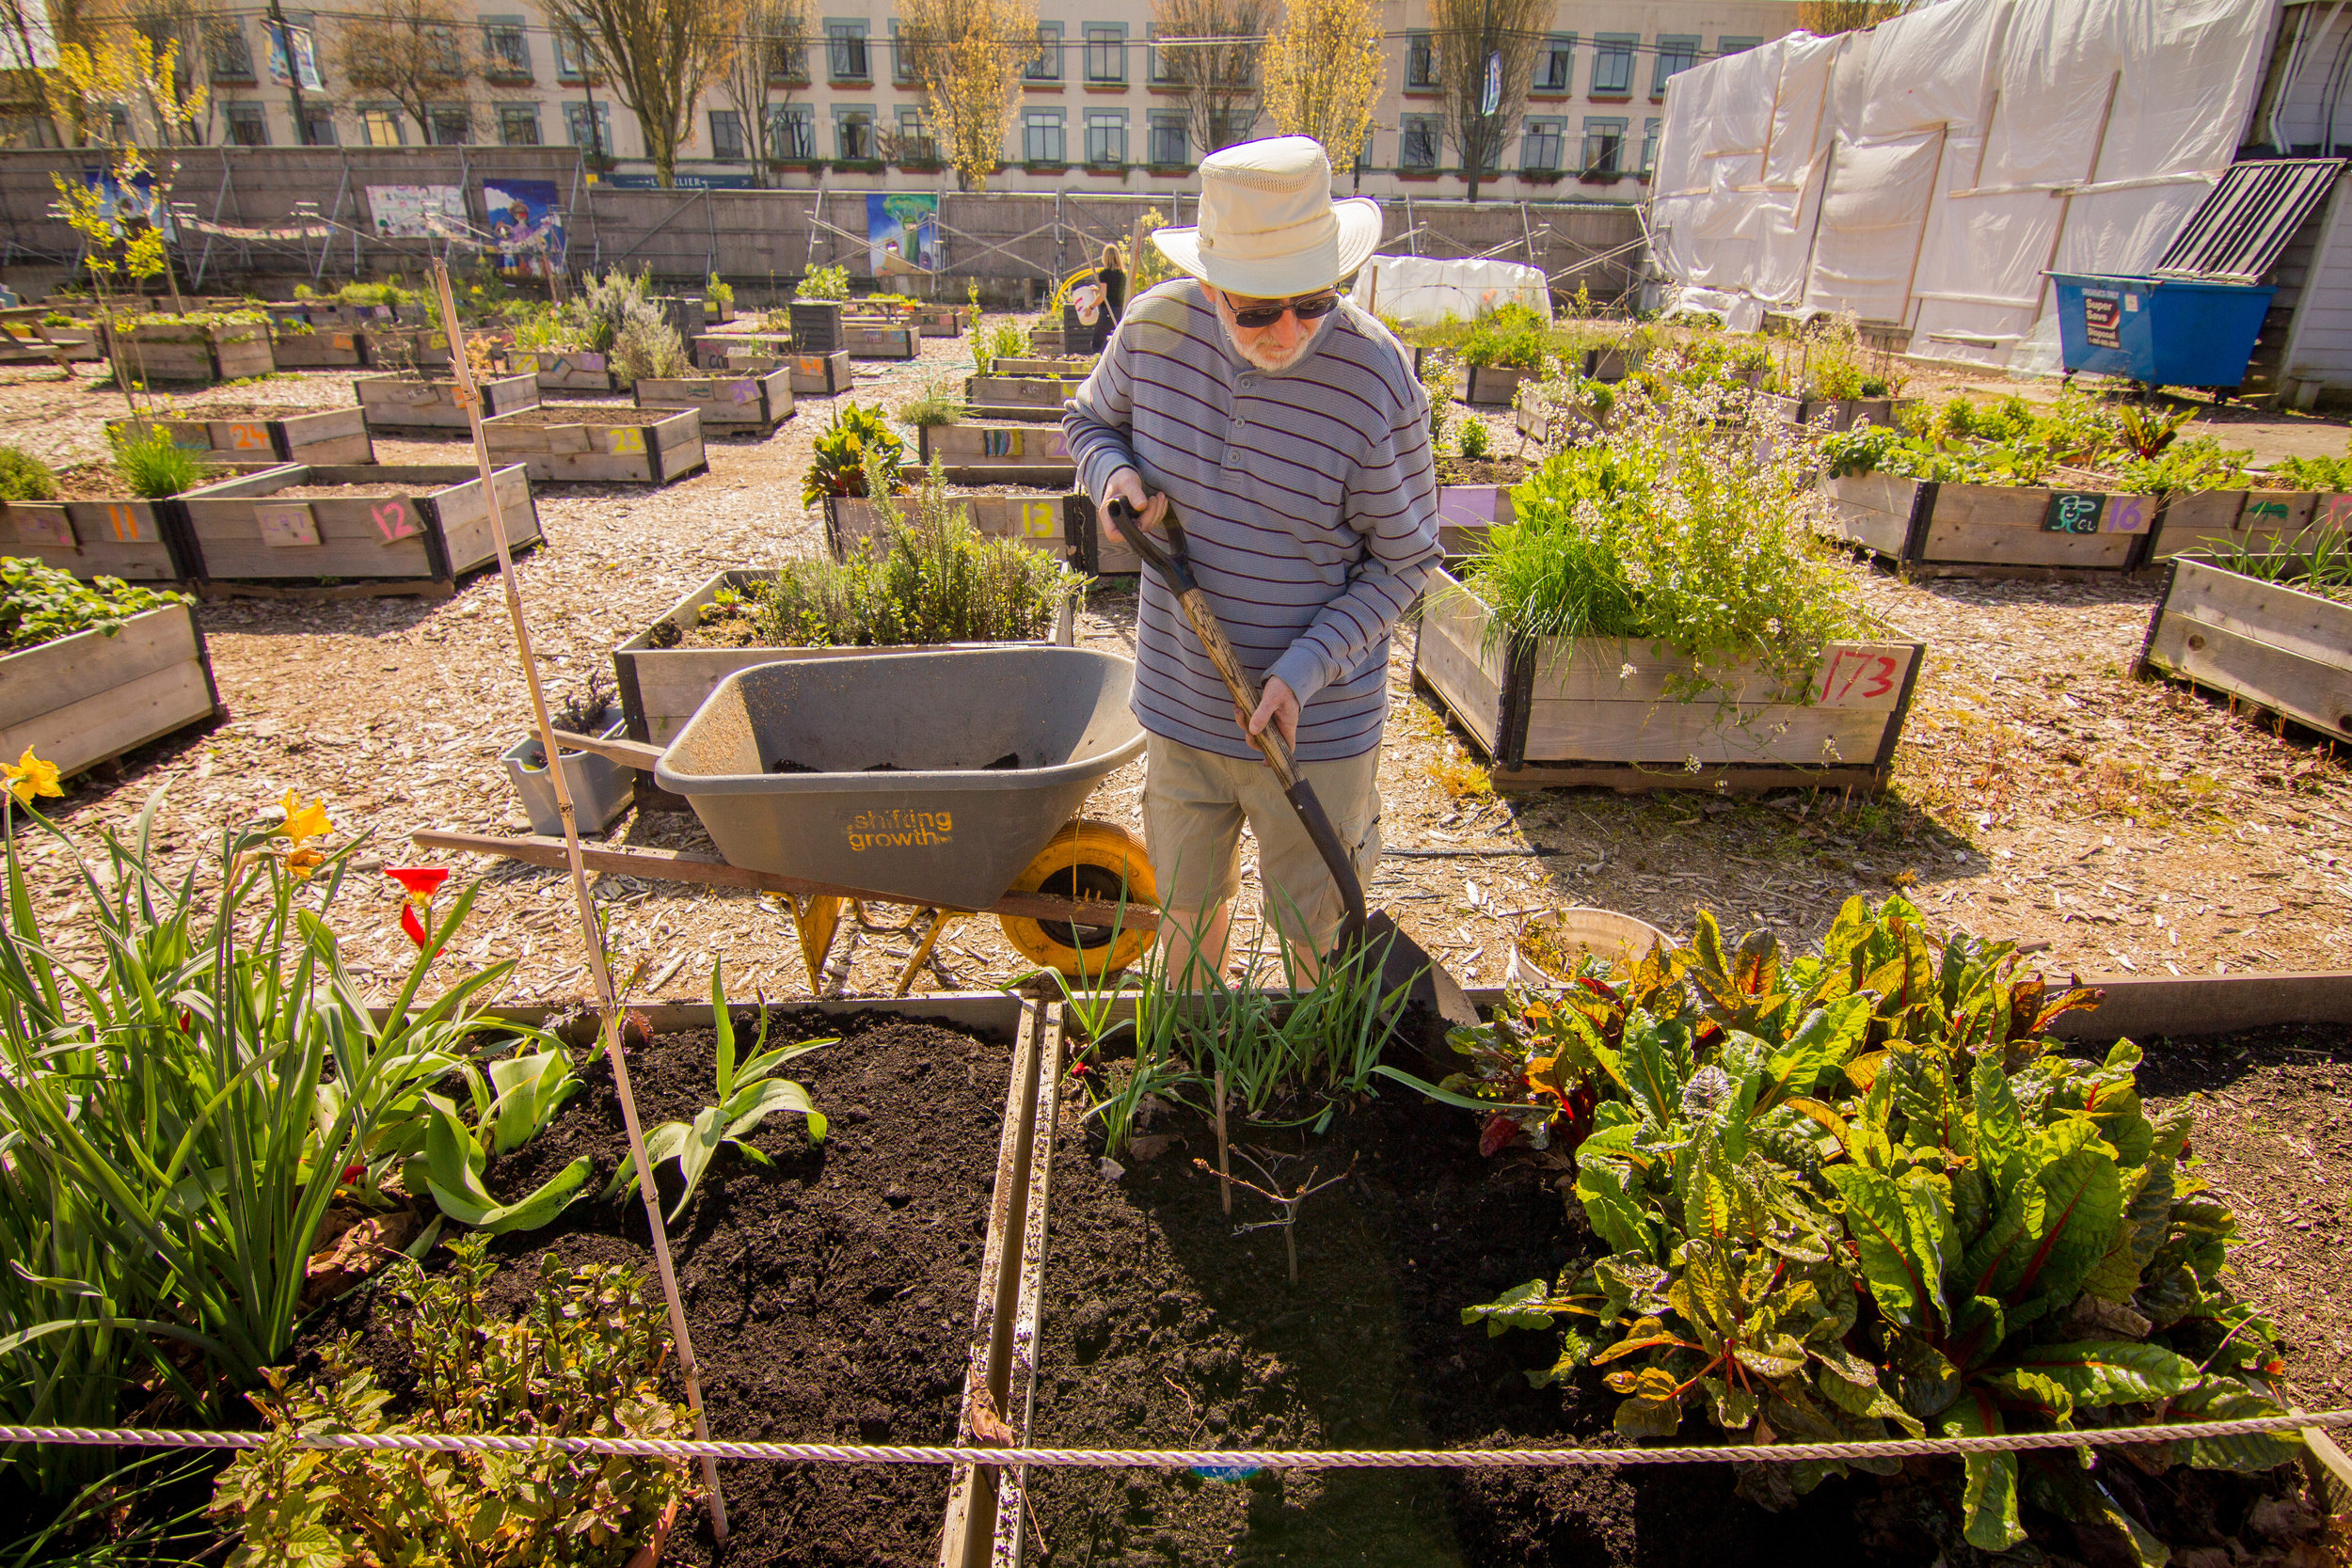 Raised_Garden_Bed_Hastings_North_Temporary_Community_Garden_04.2016_Shifting_Growth_81.jpg